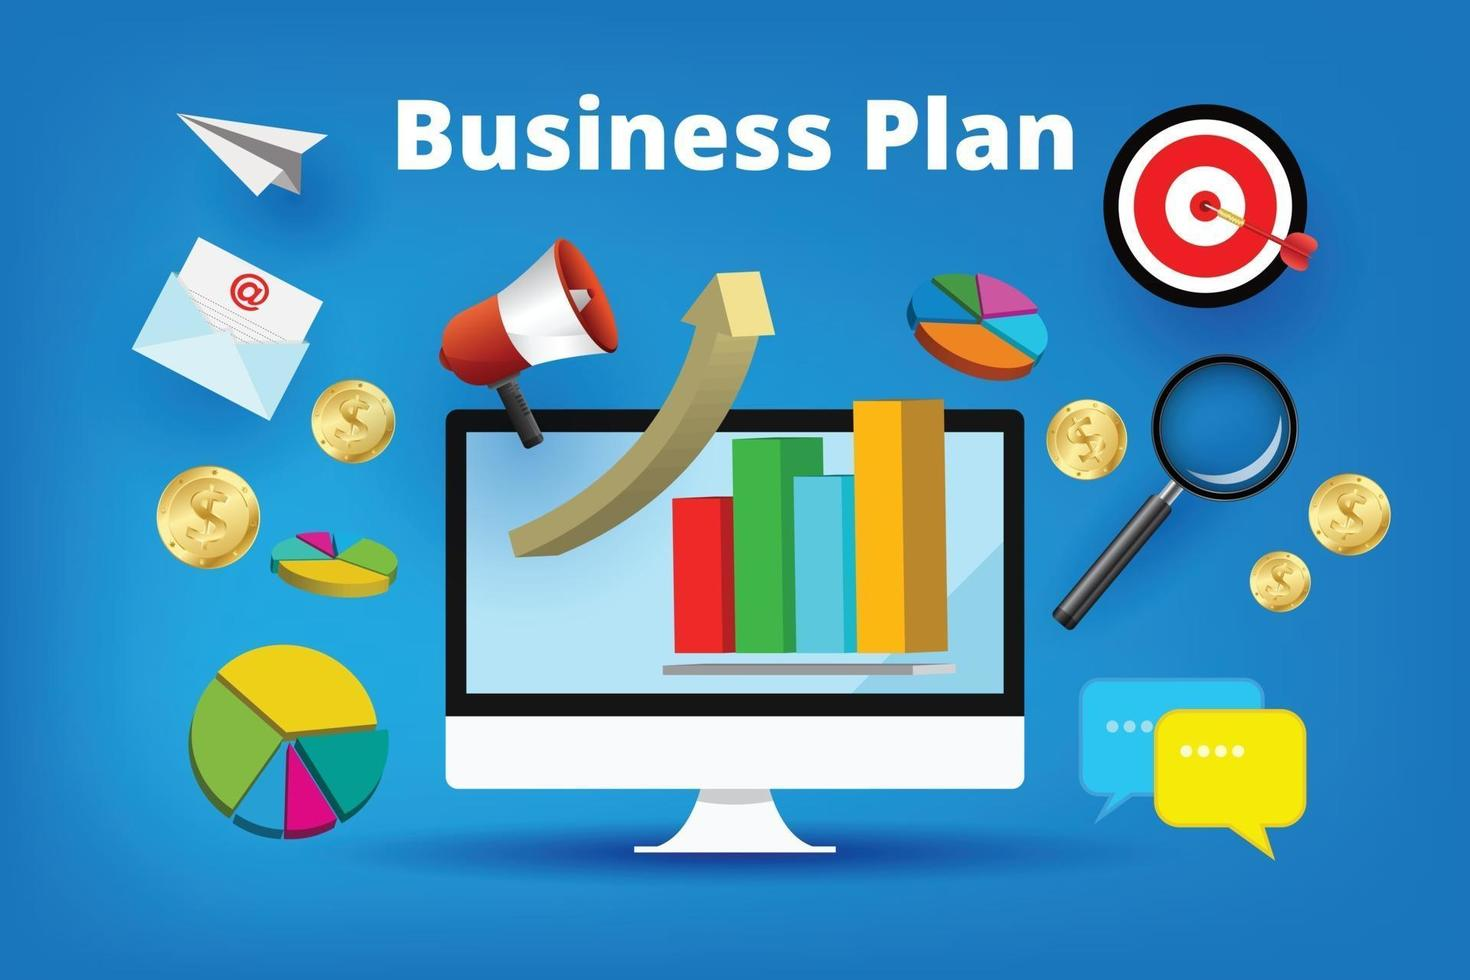 A cartooned monitor with a business plan